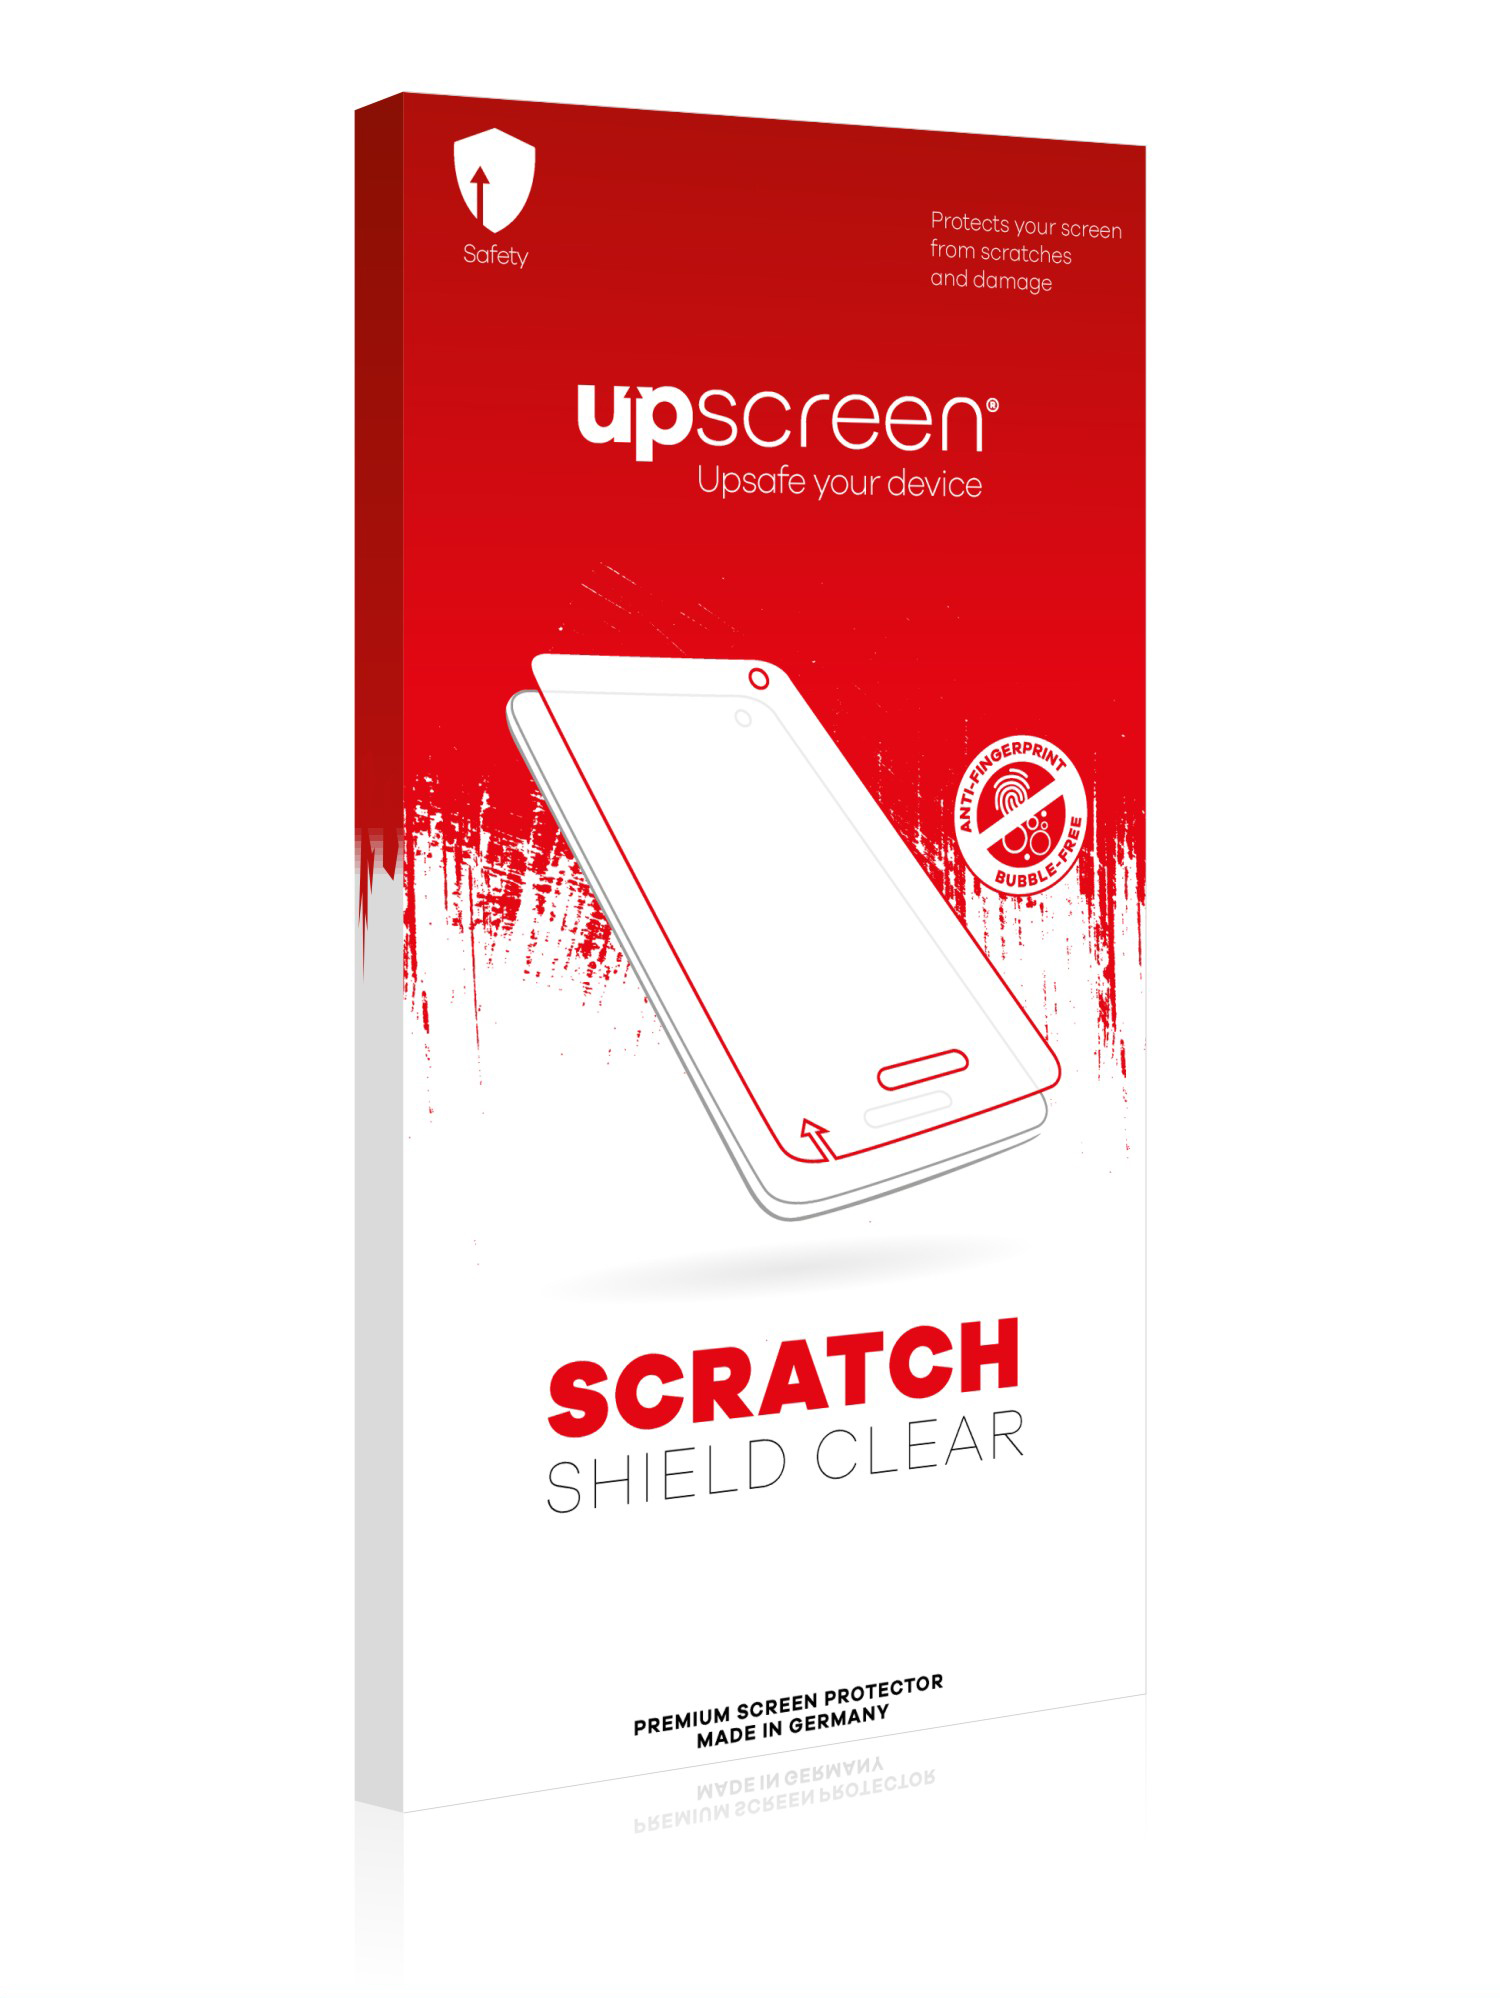 Multitouch Optimized Strong Scratch Protection upscreen Scratch Shield Clear Screen Protector for Casio FX-9860GII High Transparency